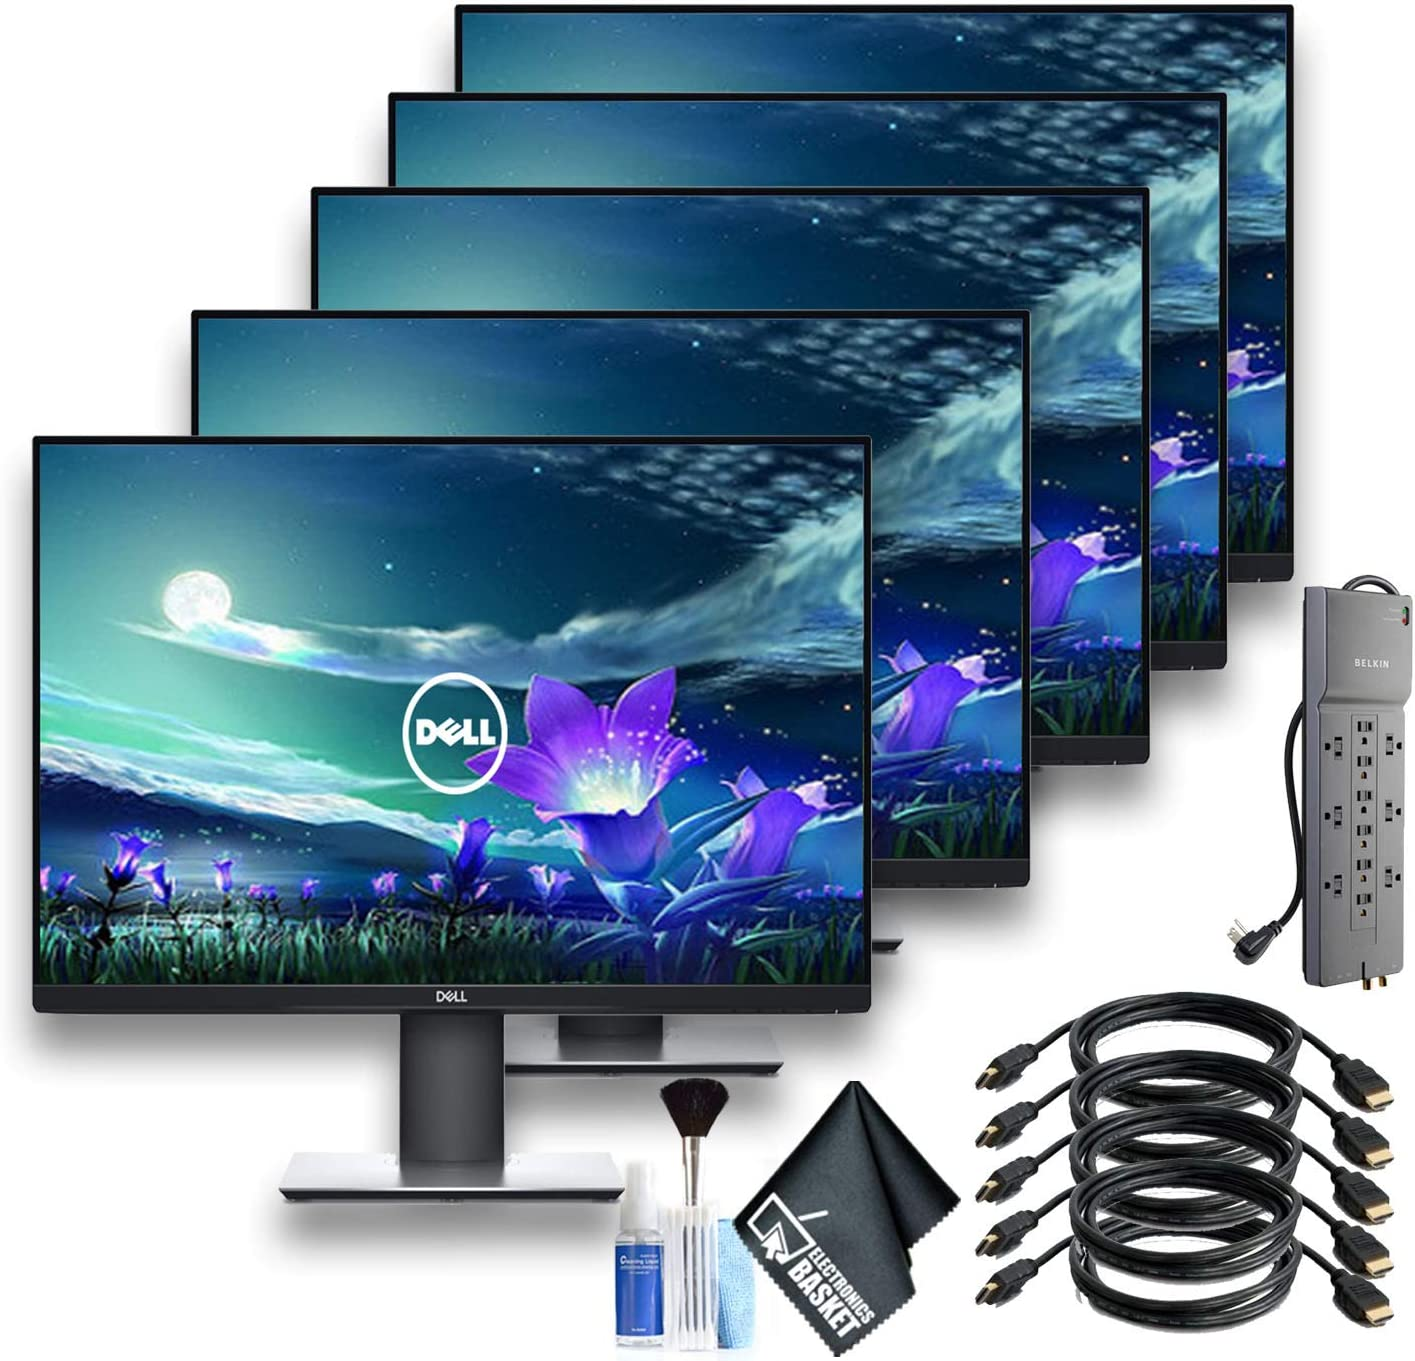 Dell UltraSharp 27 Inch Monitor U2719D QHD 2560x1440 Monitor with 1 - PowerStrip and 5 HDMI Cables - 5 Pack